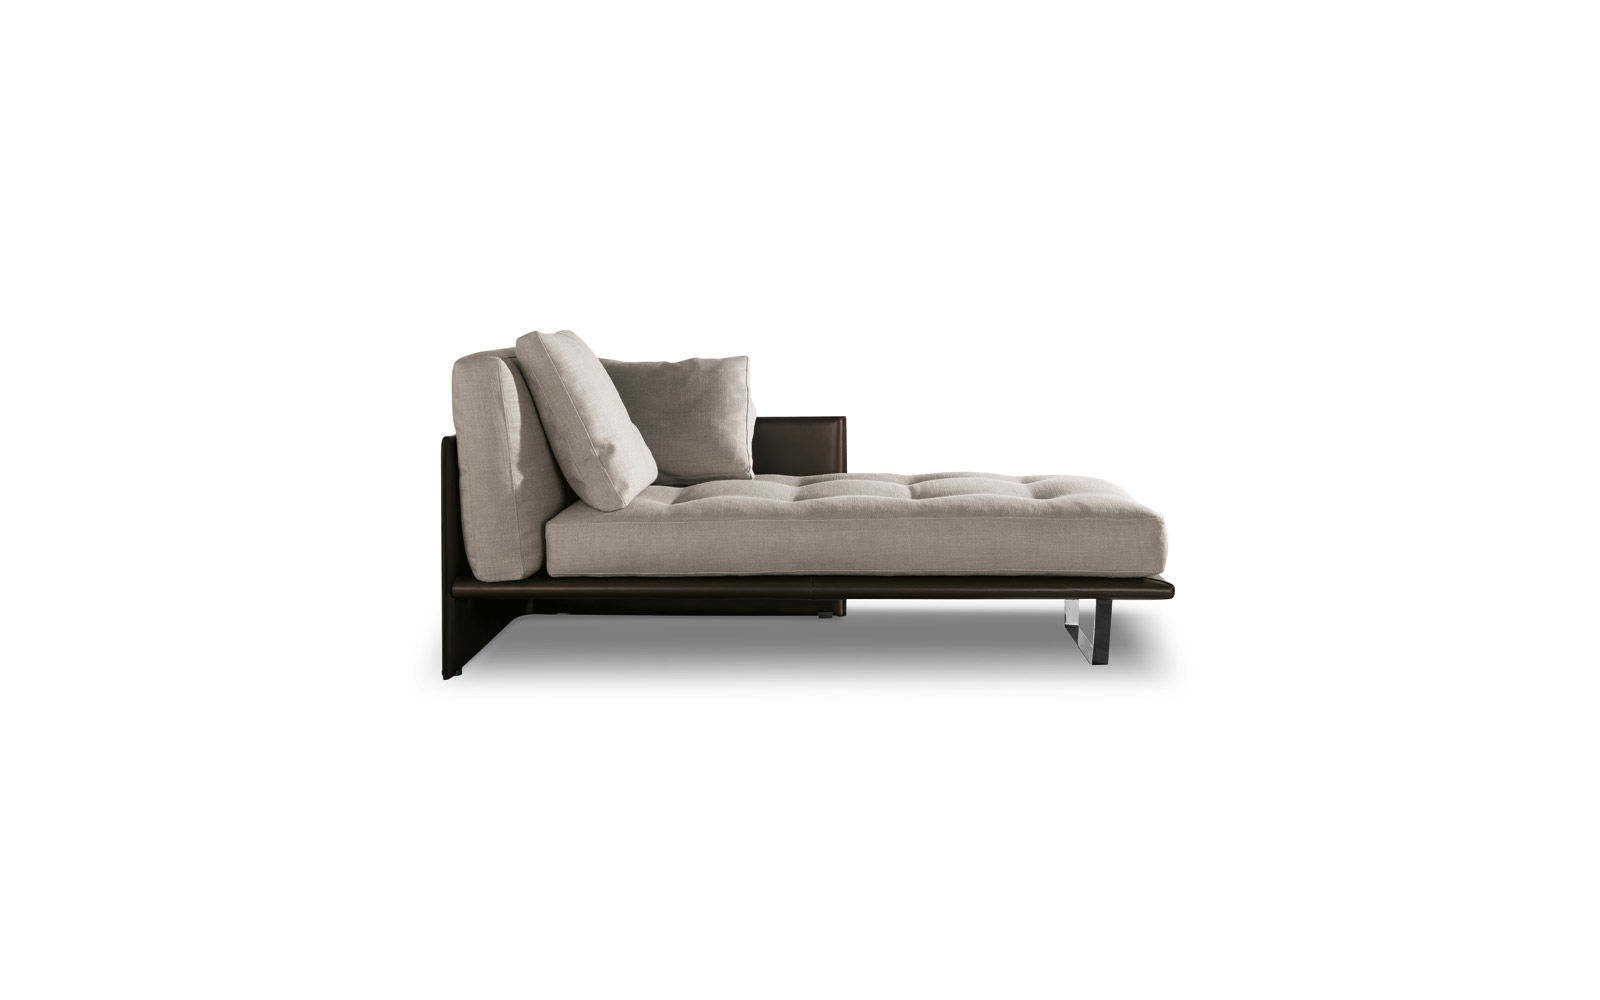 chez long sofa bed extra deep luggage chaise longue